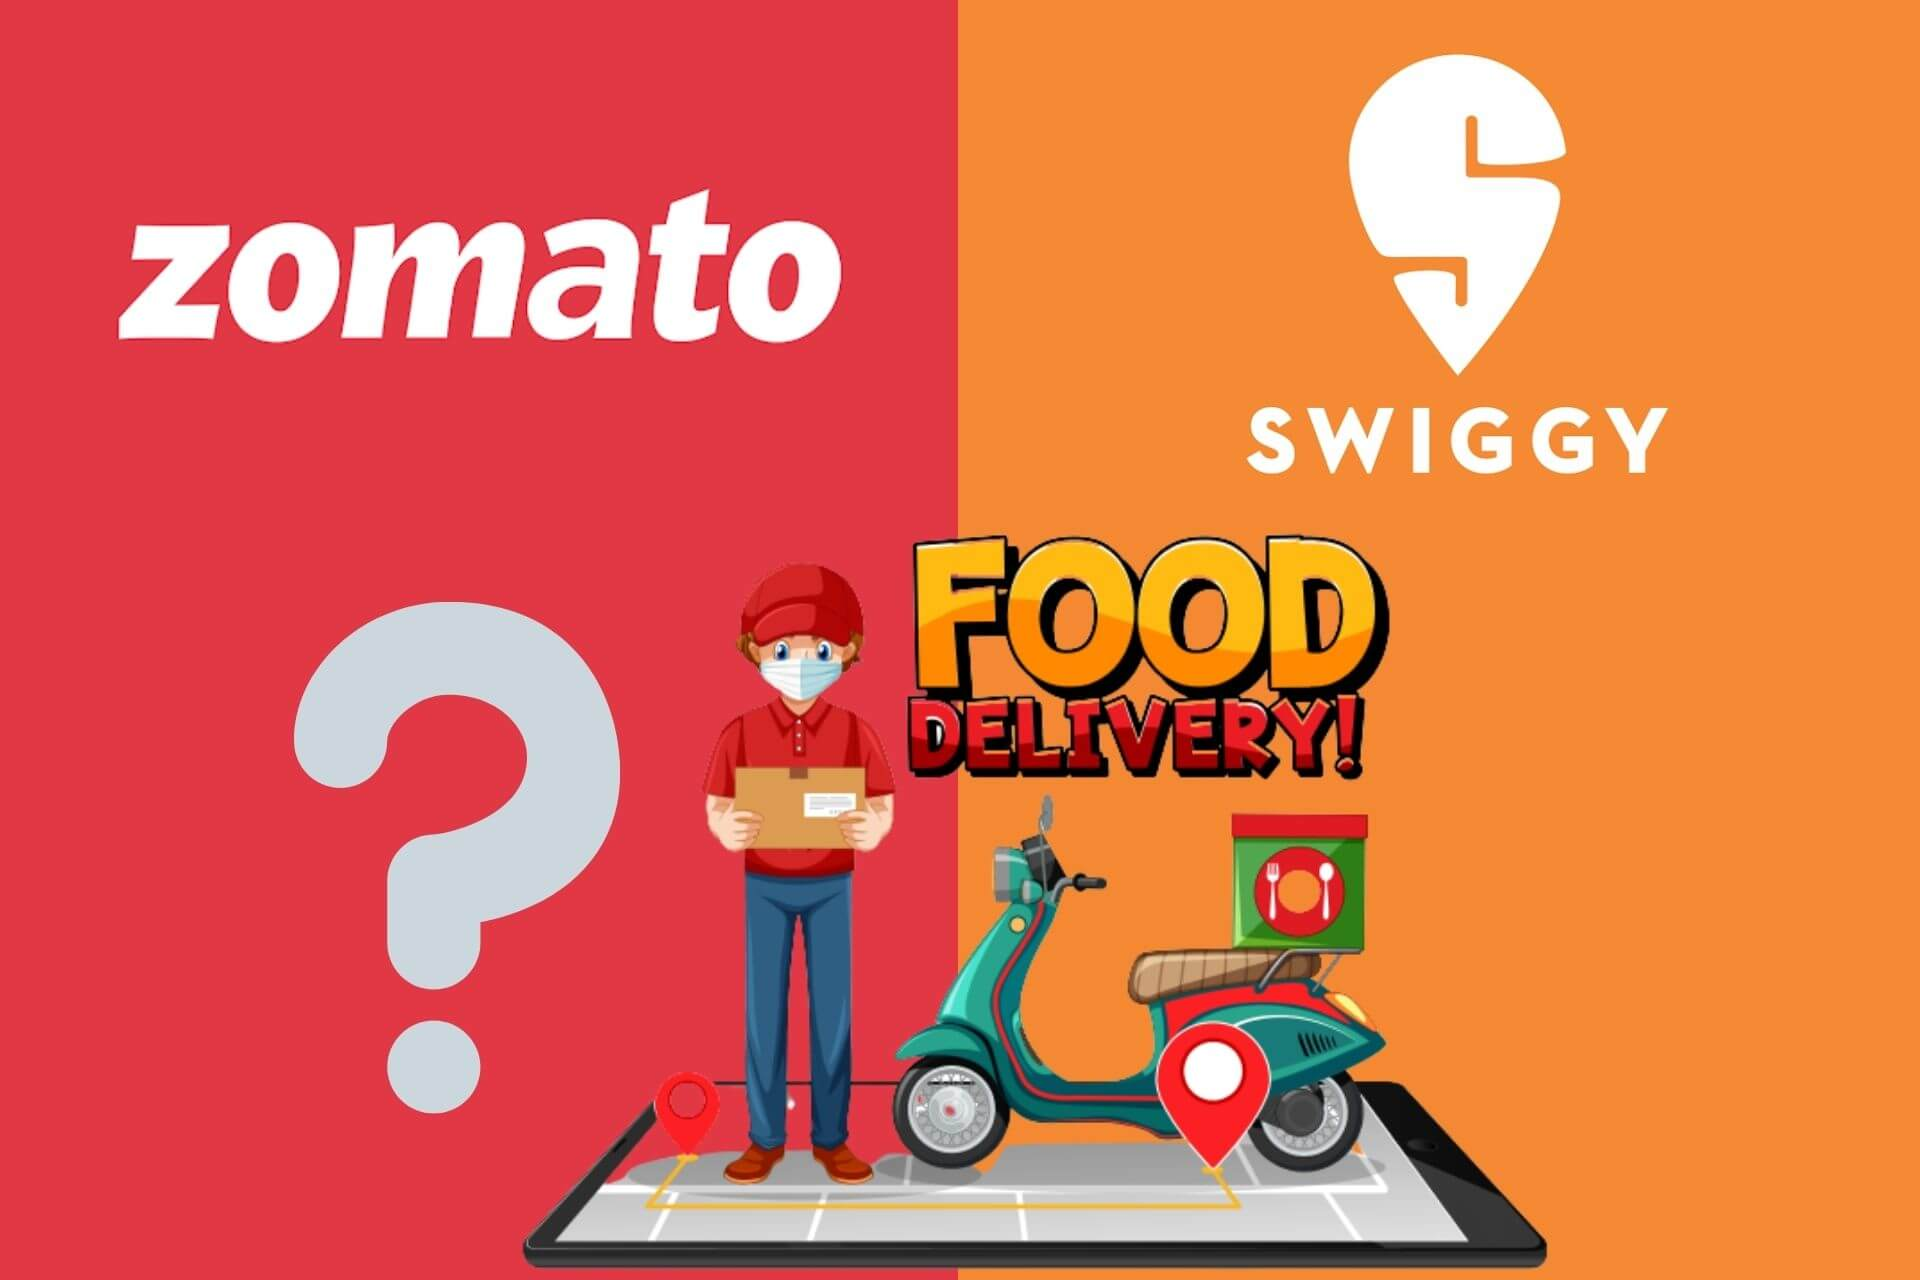 Swiggy vs Zomato: Which one is Better Food Aggregator?